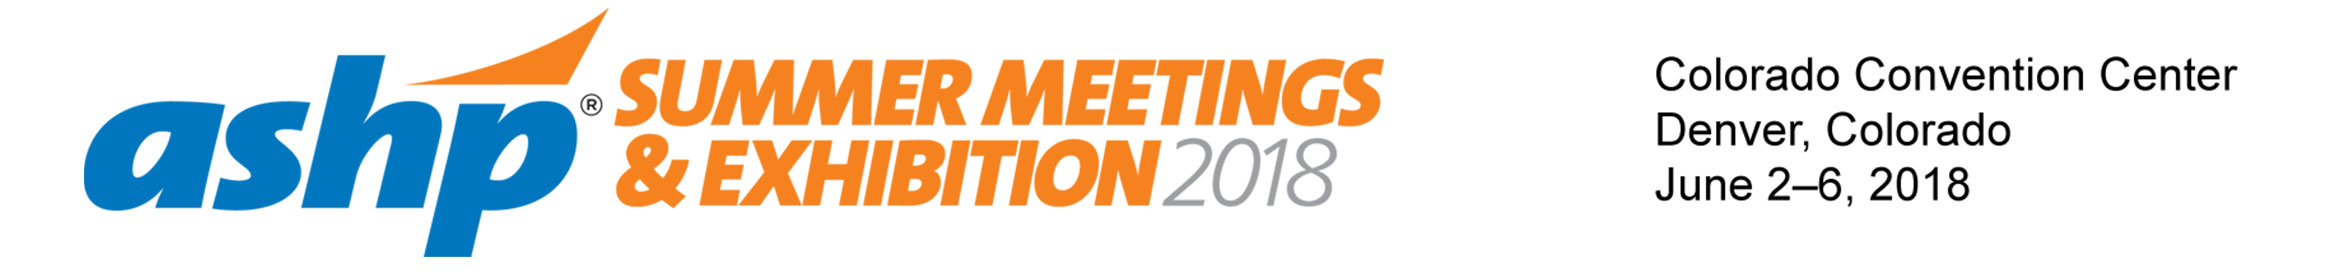 2018 Summer Meetings & Exhibition Main banner